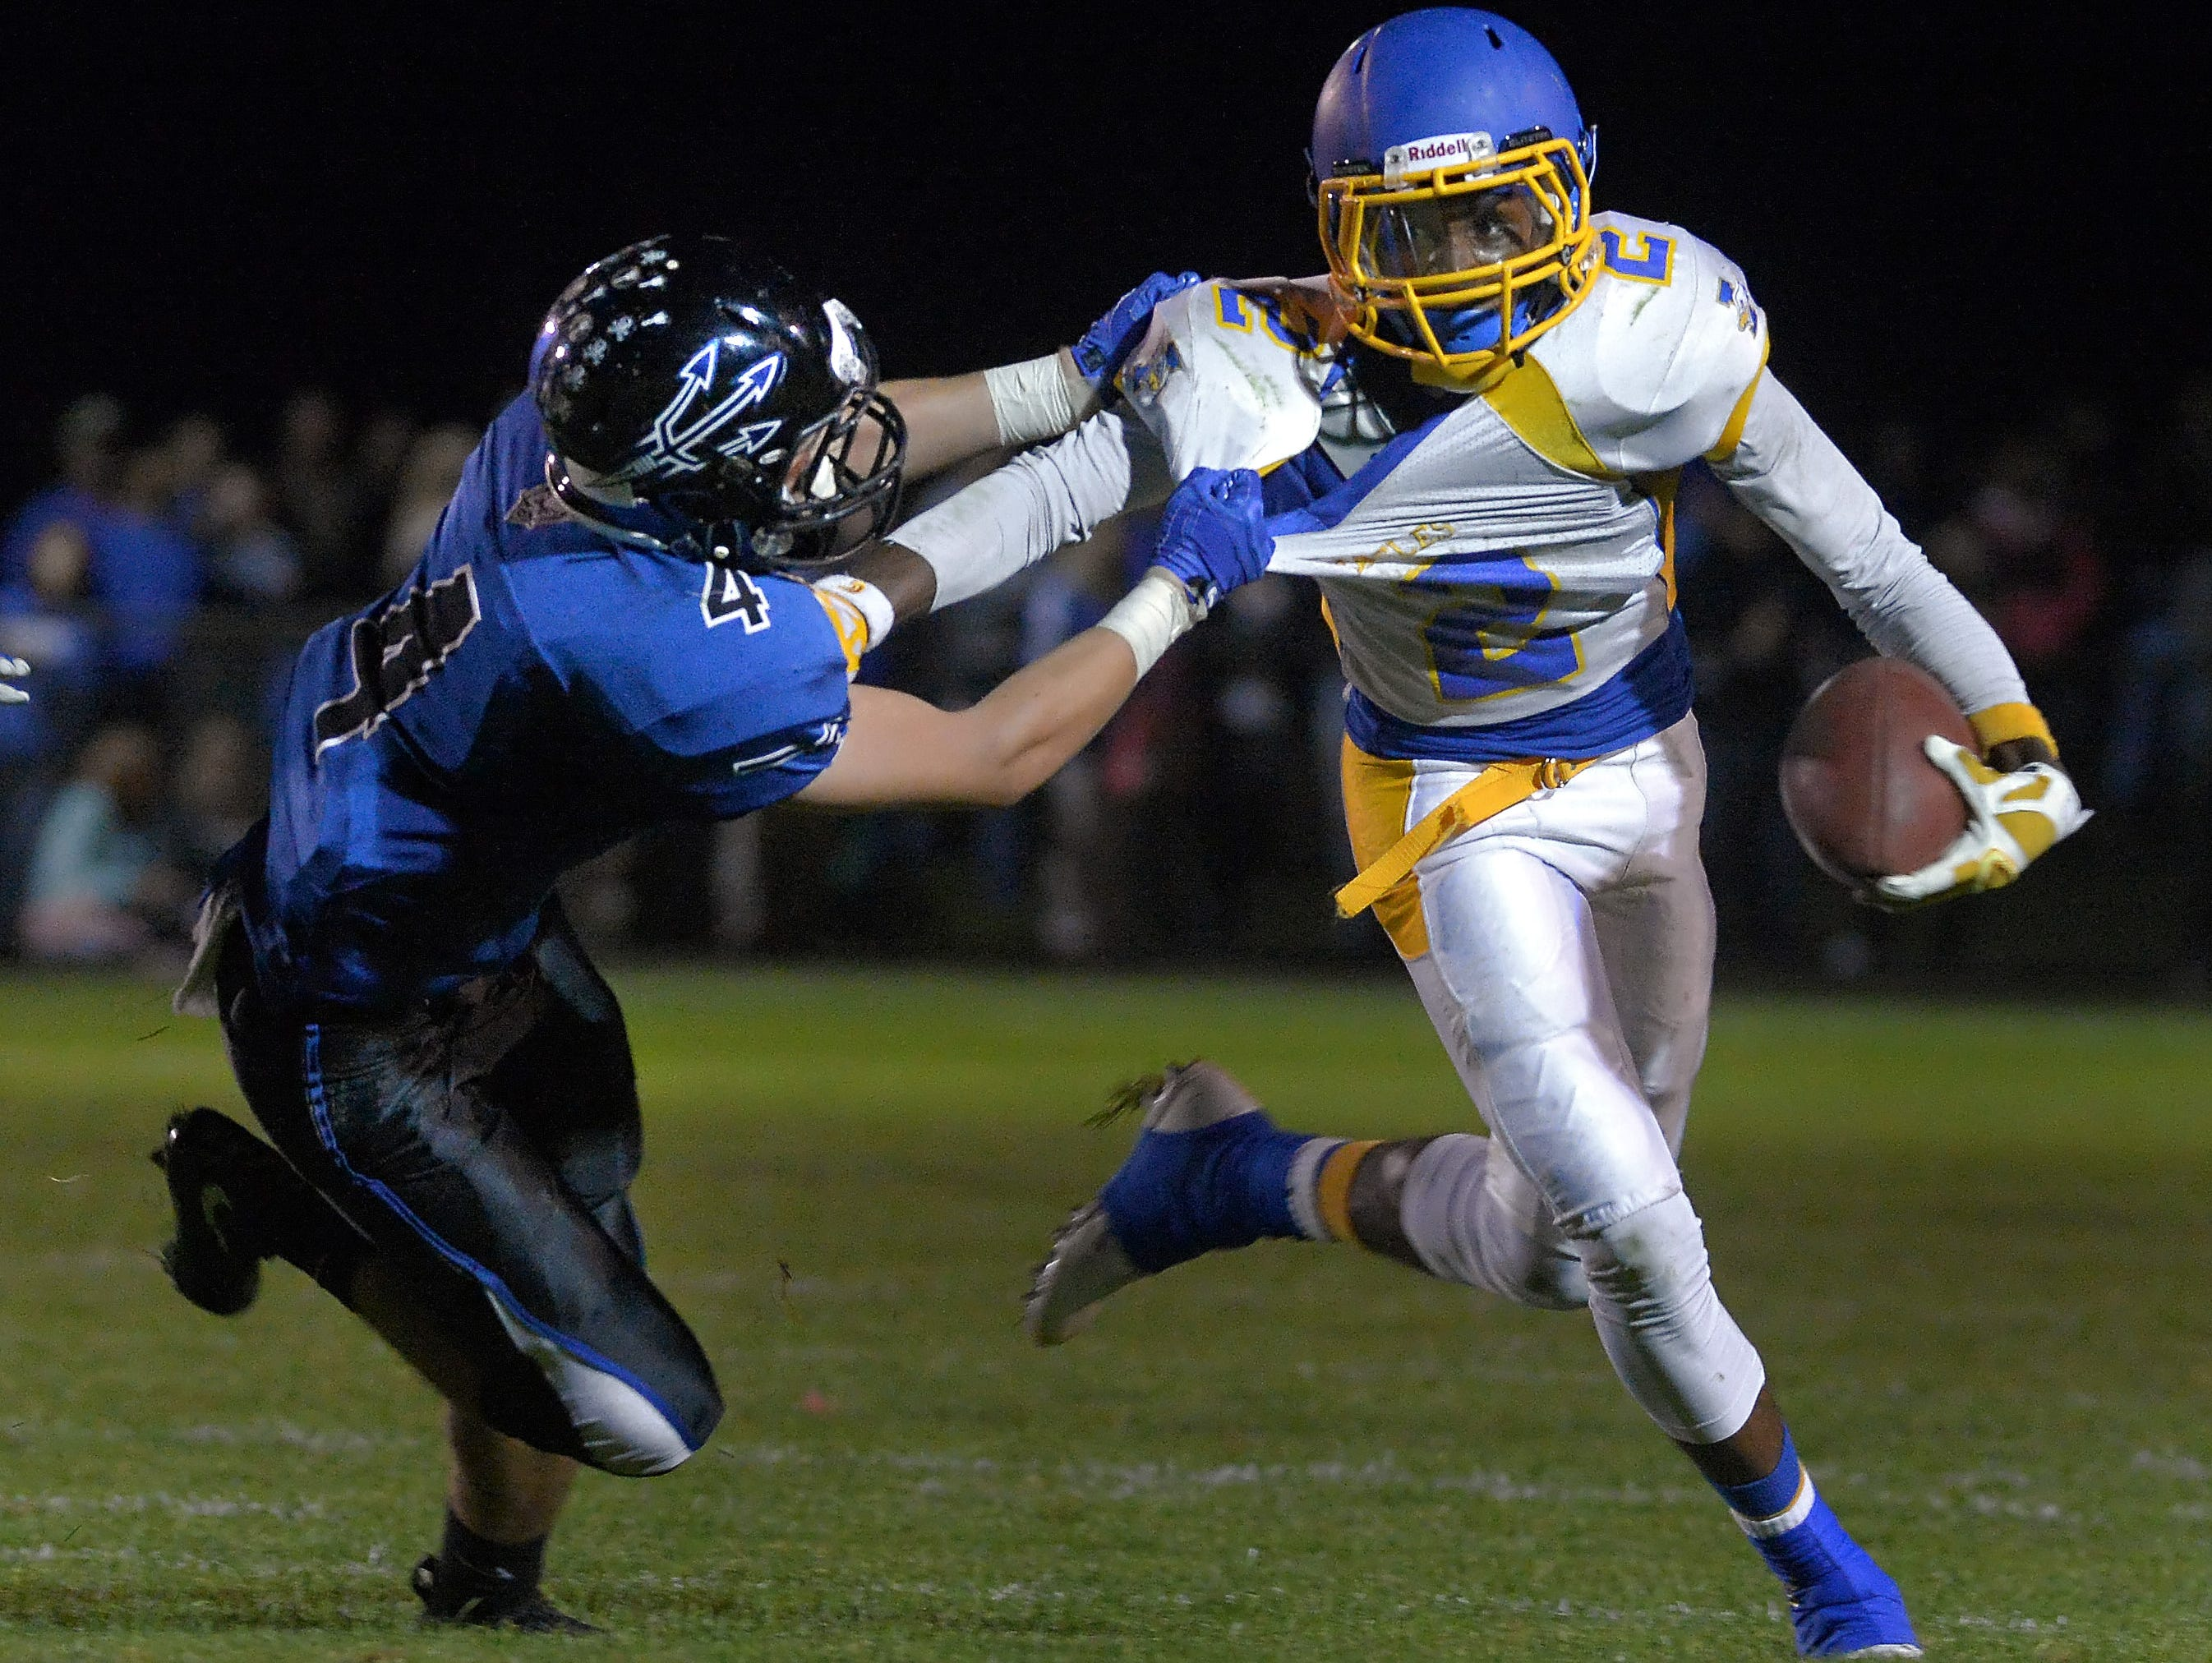 Irondequoit's Ty'Sean Sizer, right, tries to break the tackle of Brockport's Shane Hogan during a game at Brockport High School on Friday, September 25, 2015.